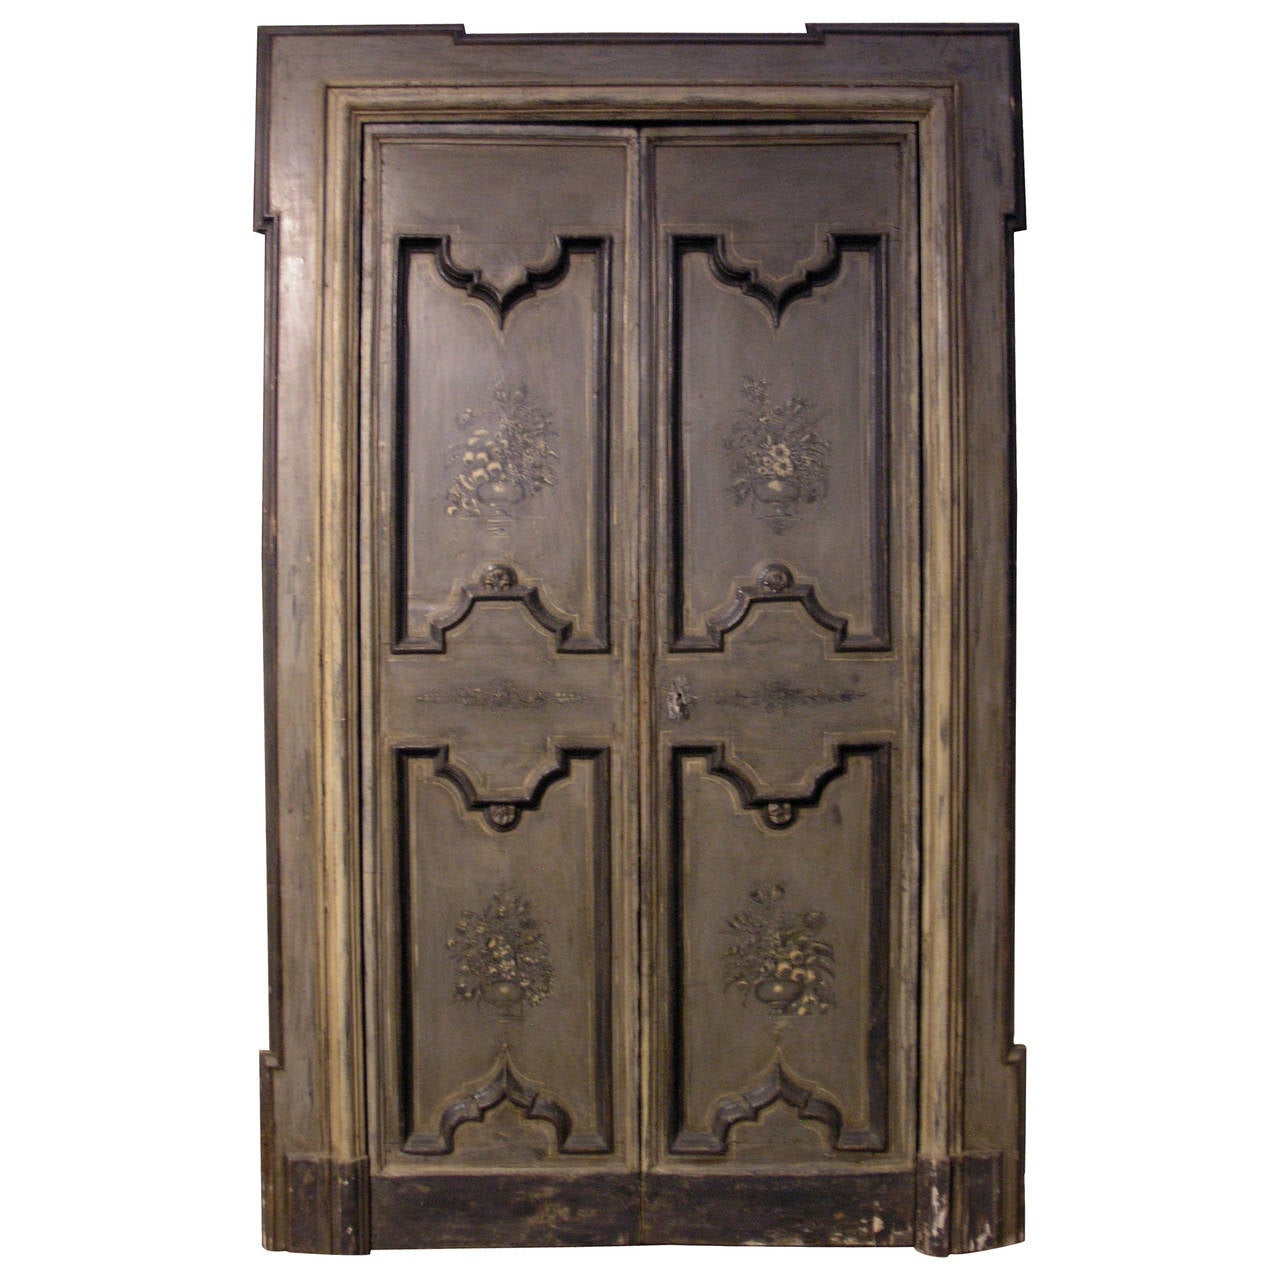 Antique lacquered double door for sale at 1stdibs for Double doors for sale